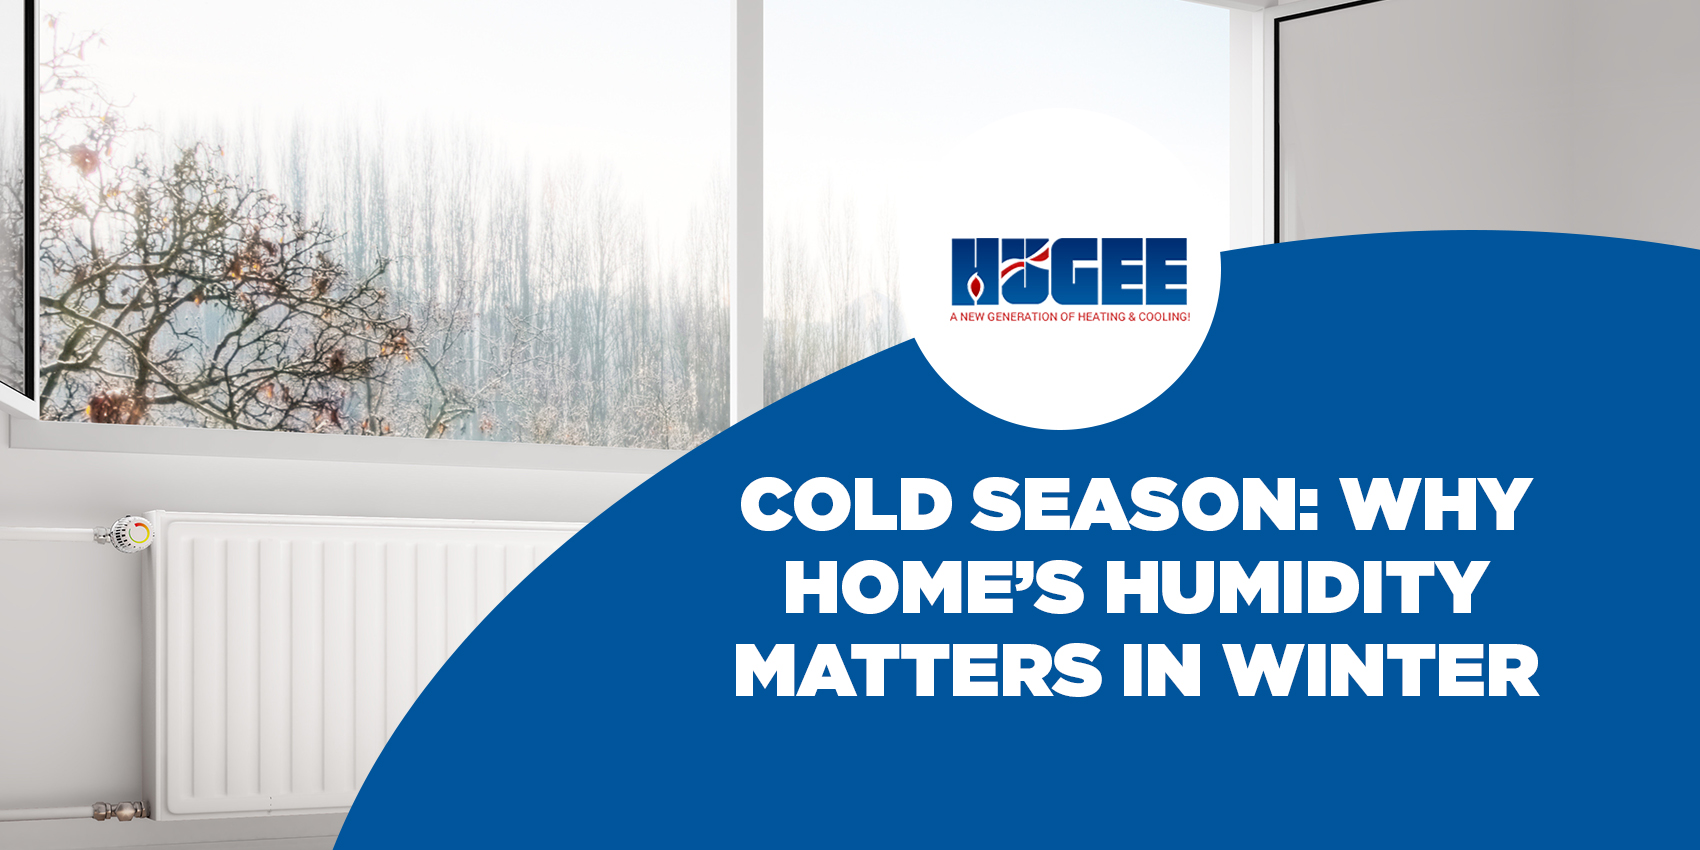 Cold Season: Why Home's Humidity Matters in Winter